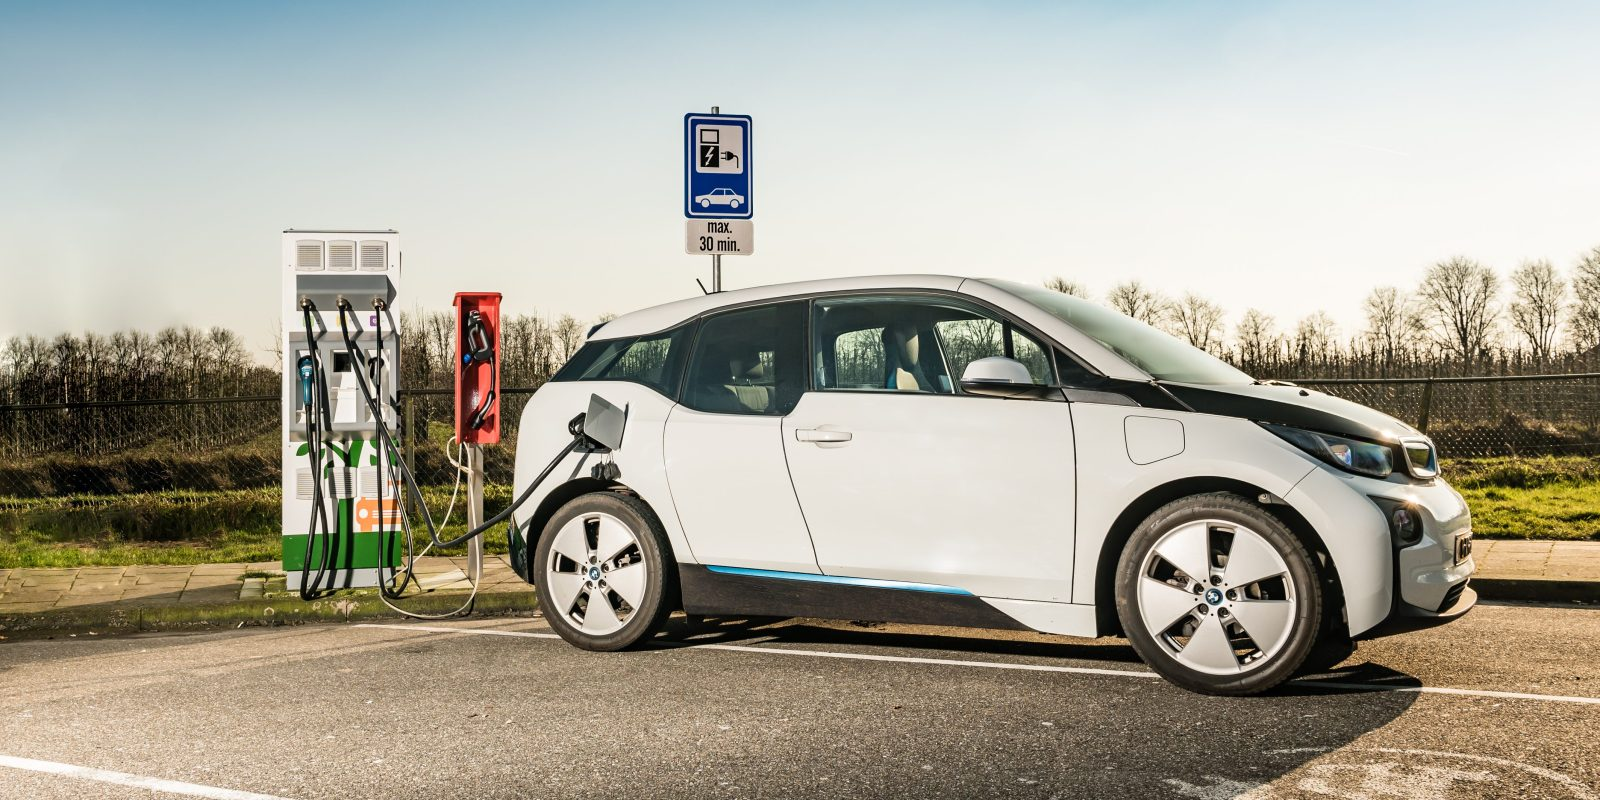 Bmw And Porsche Join Forces To Enable 15 Min Electric Car Charging